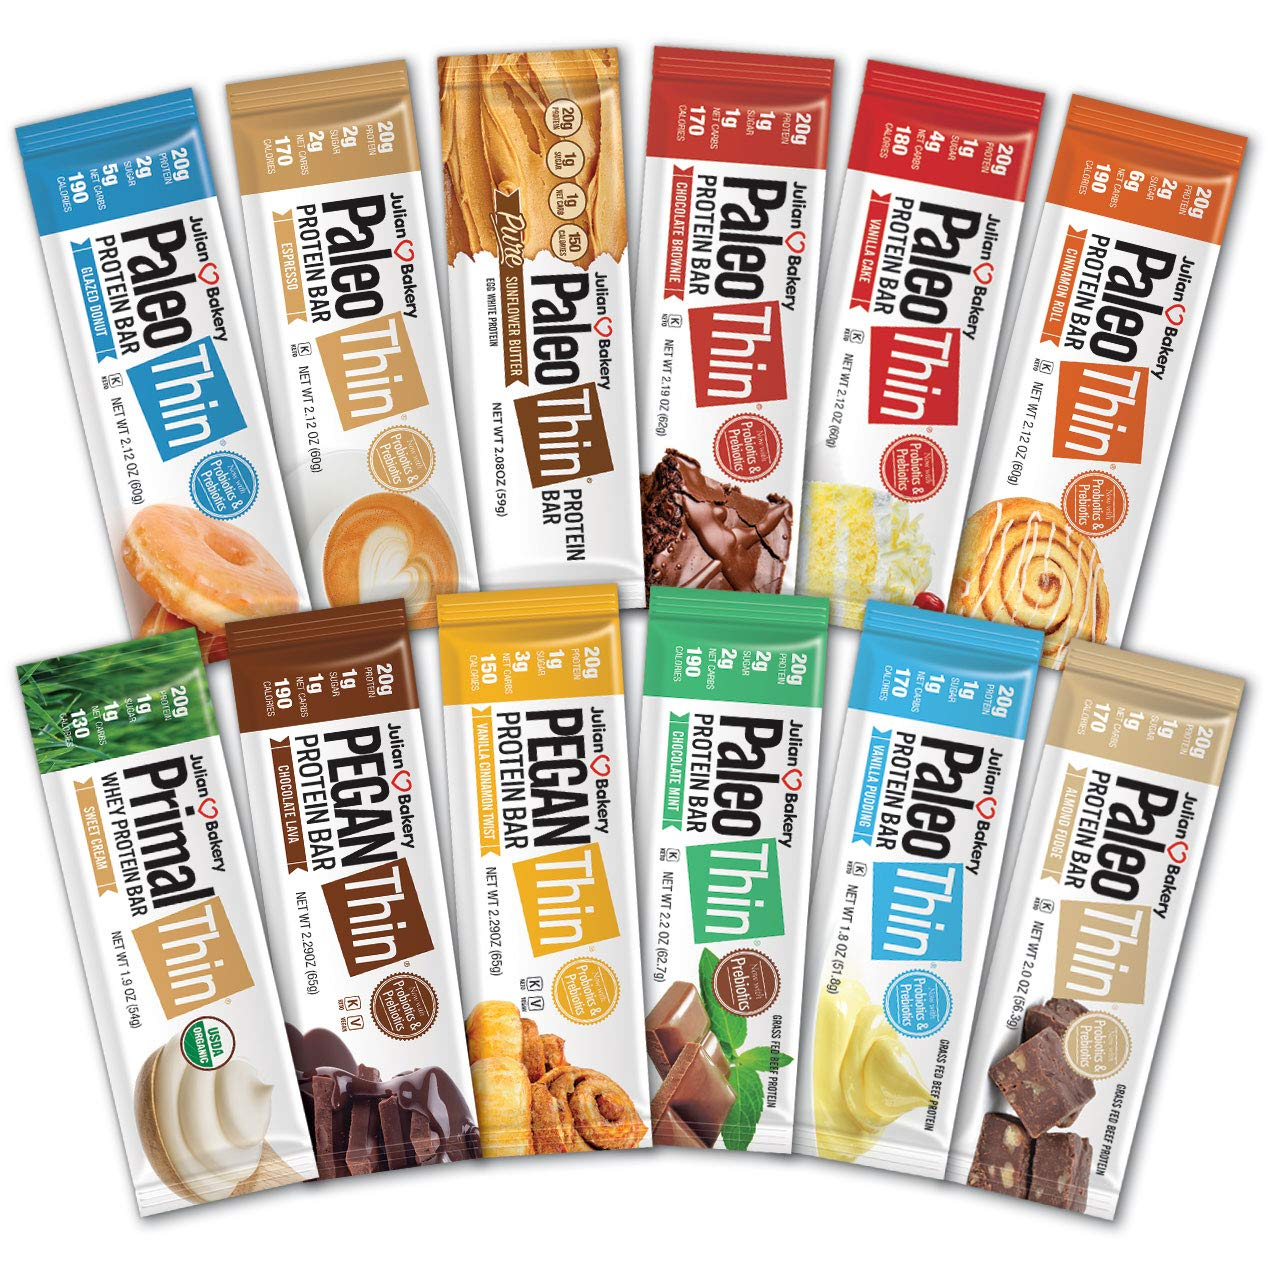 Paleo Thin® Protein Bars (New Variety Box) (20g Protein)(Gluten-Free)(Low Carb)(12 Bars) by Julian Bakery